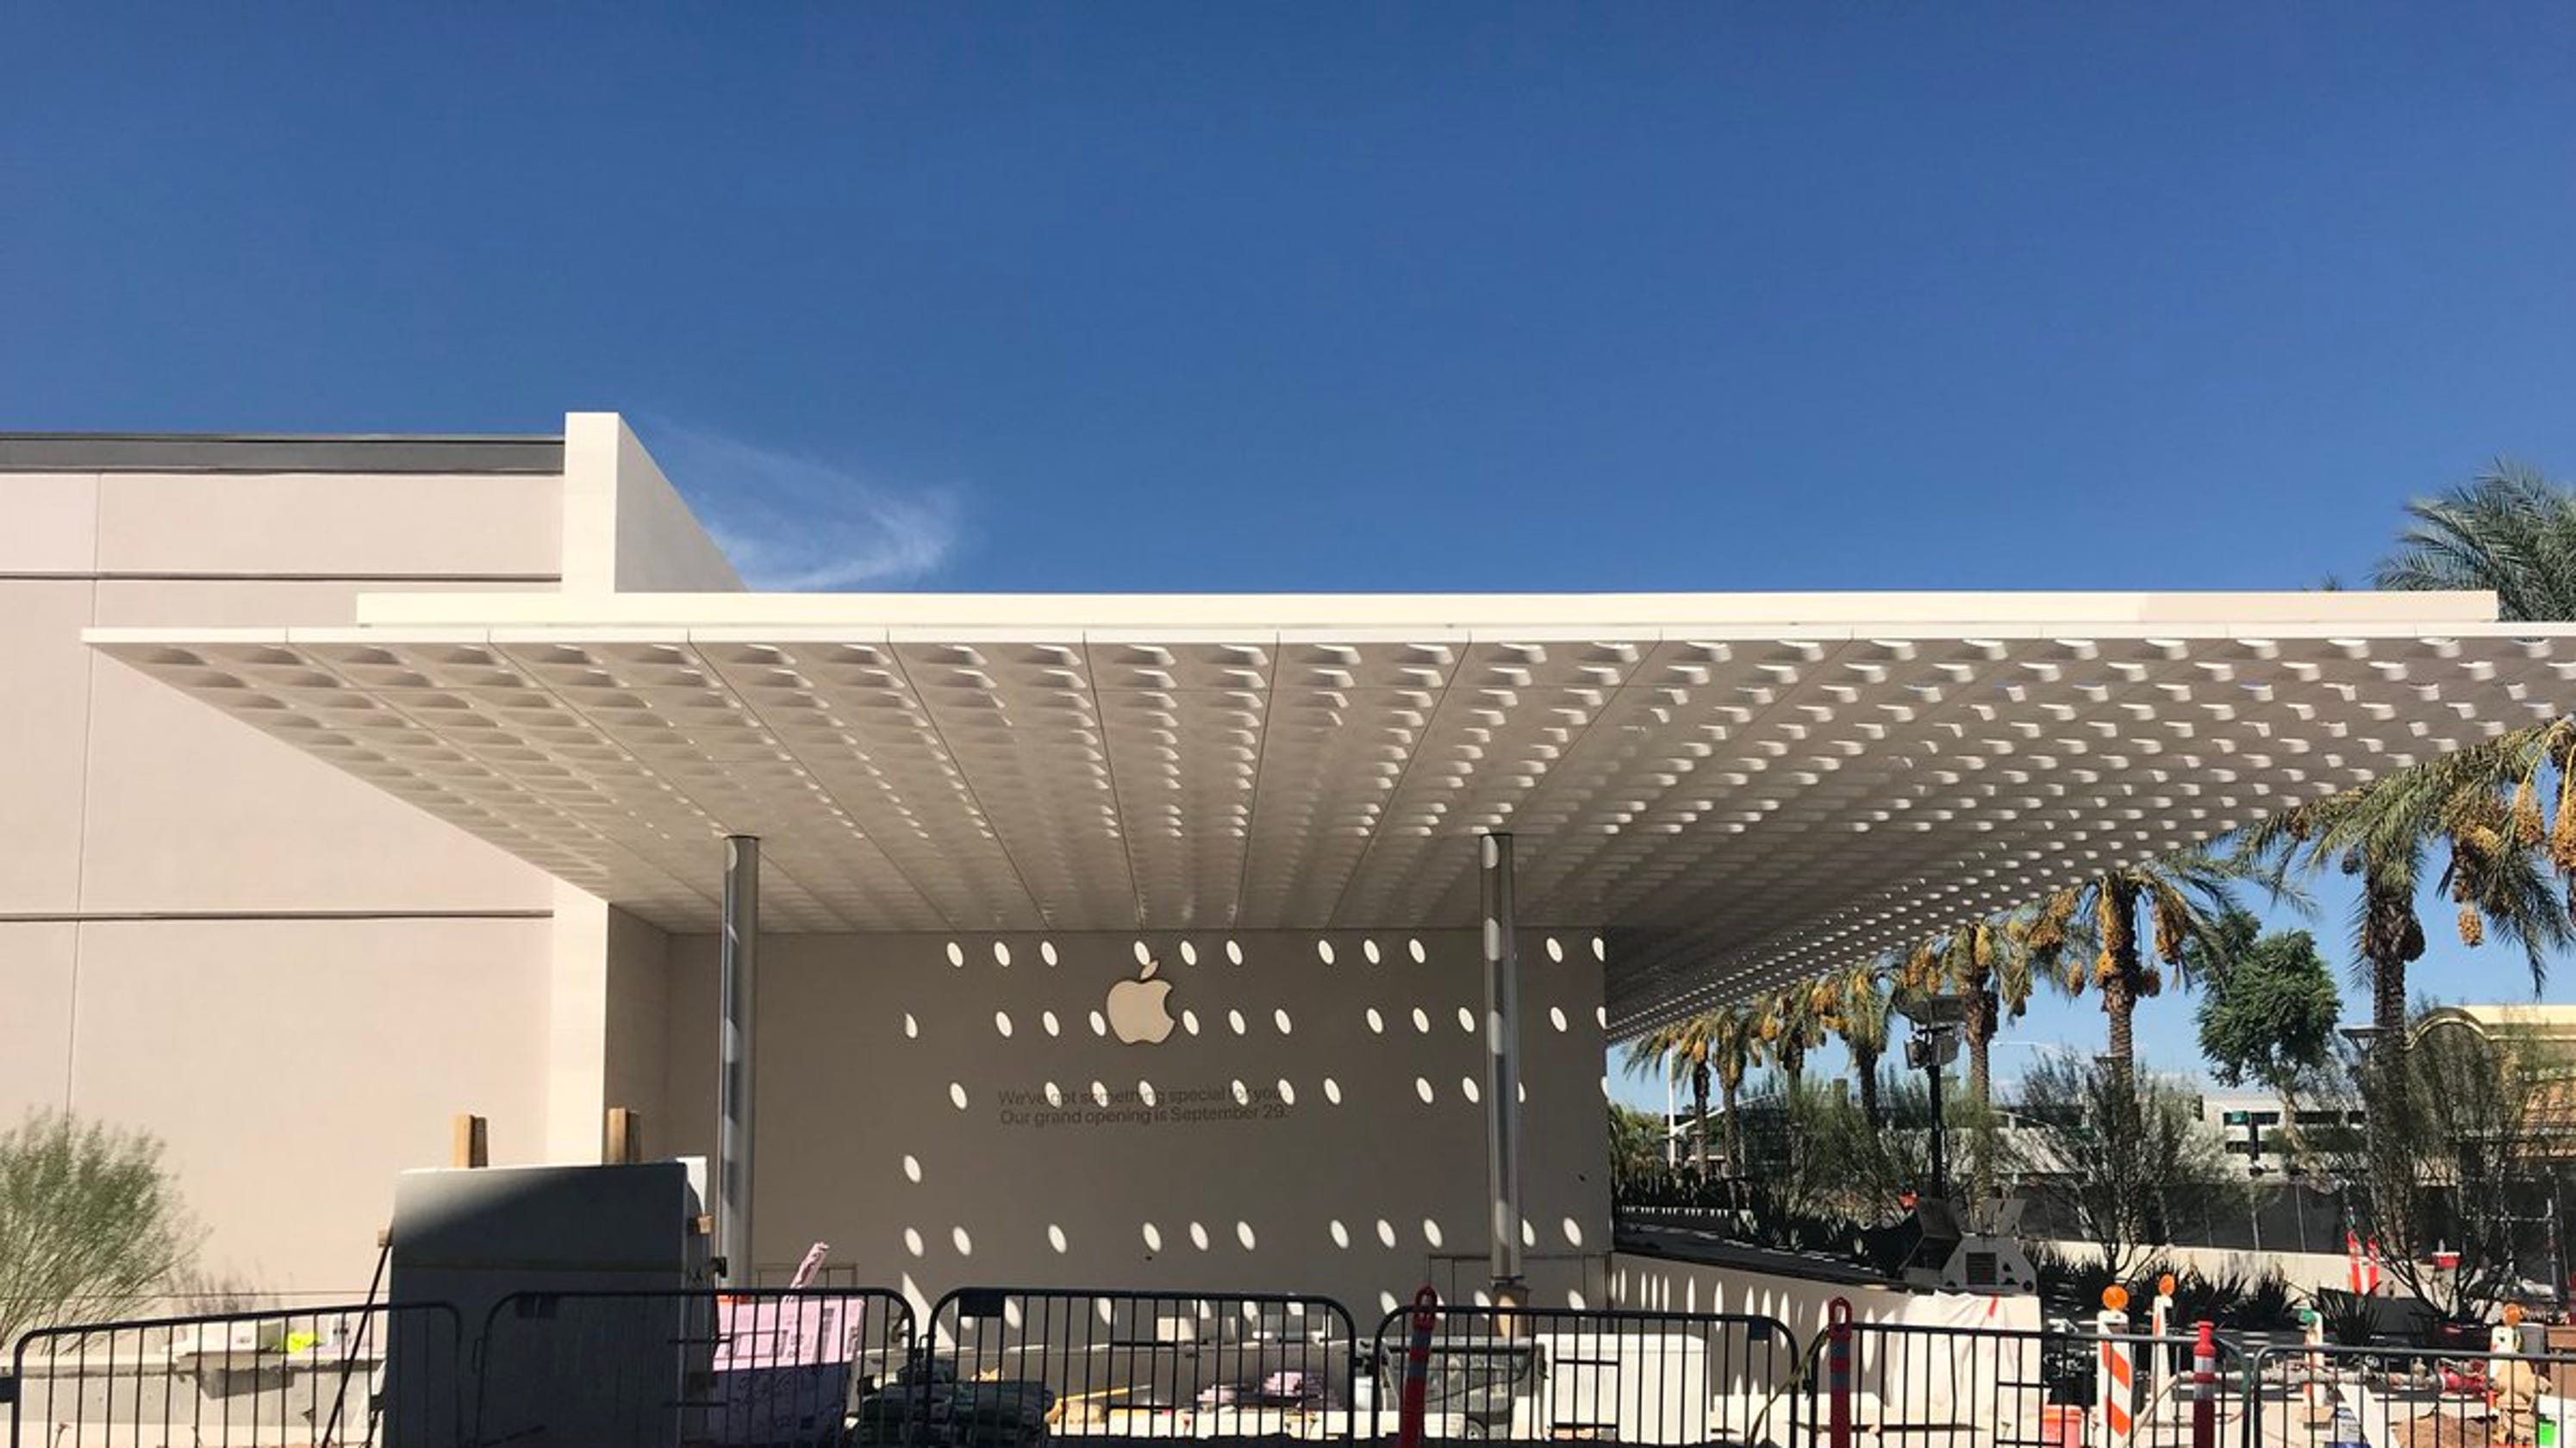 Apple to open newest store at Scottsdale Fashion Square this week